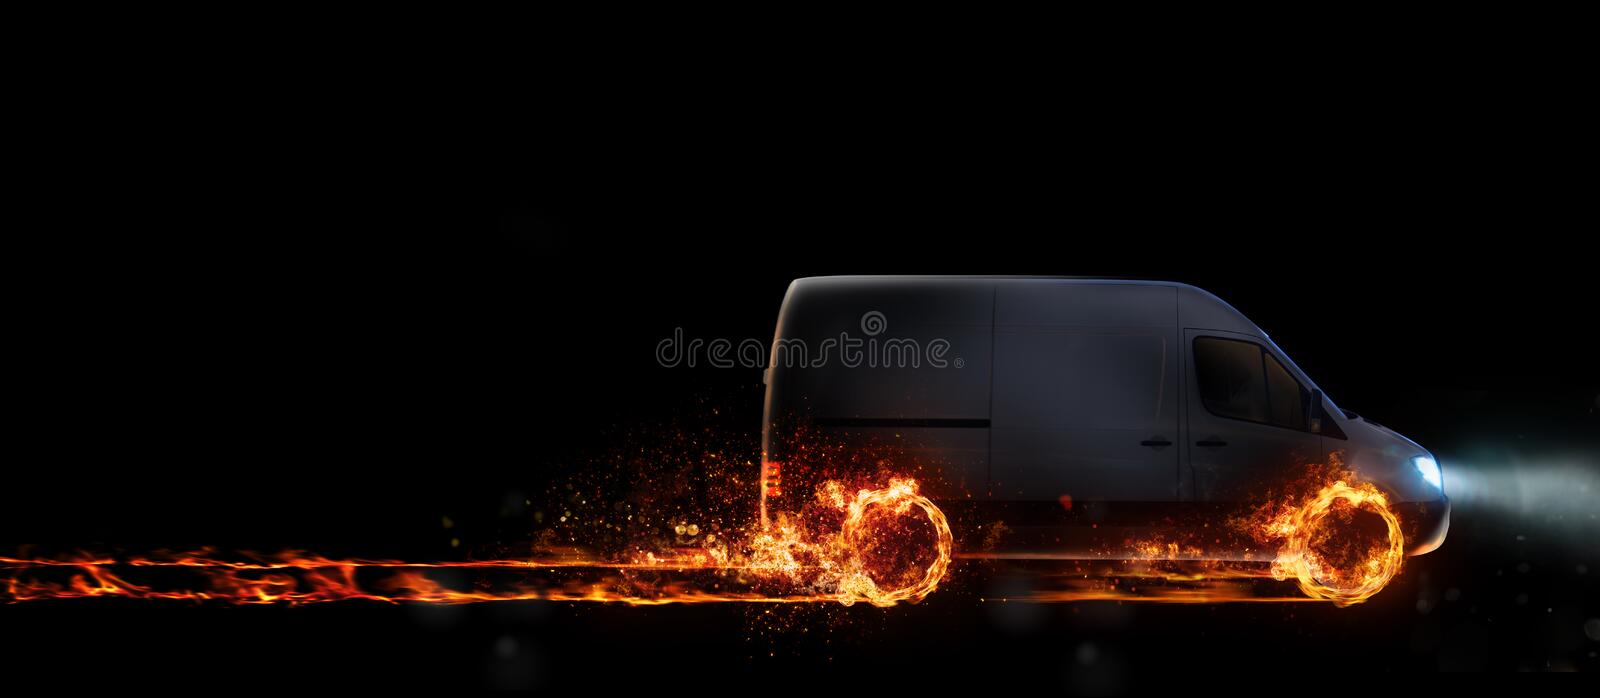 Super fast delivery of package service with van with wheels on fire. 3D Rendering vector illustration